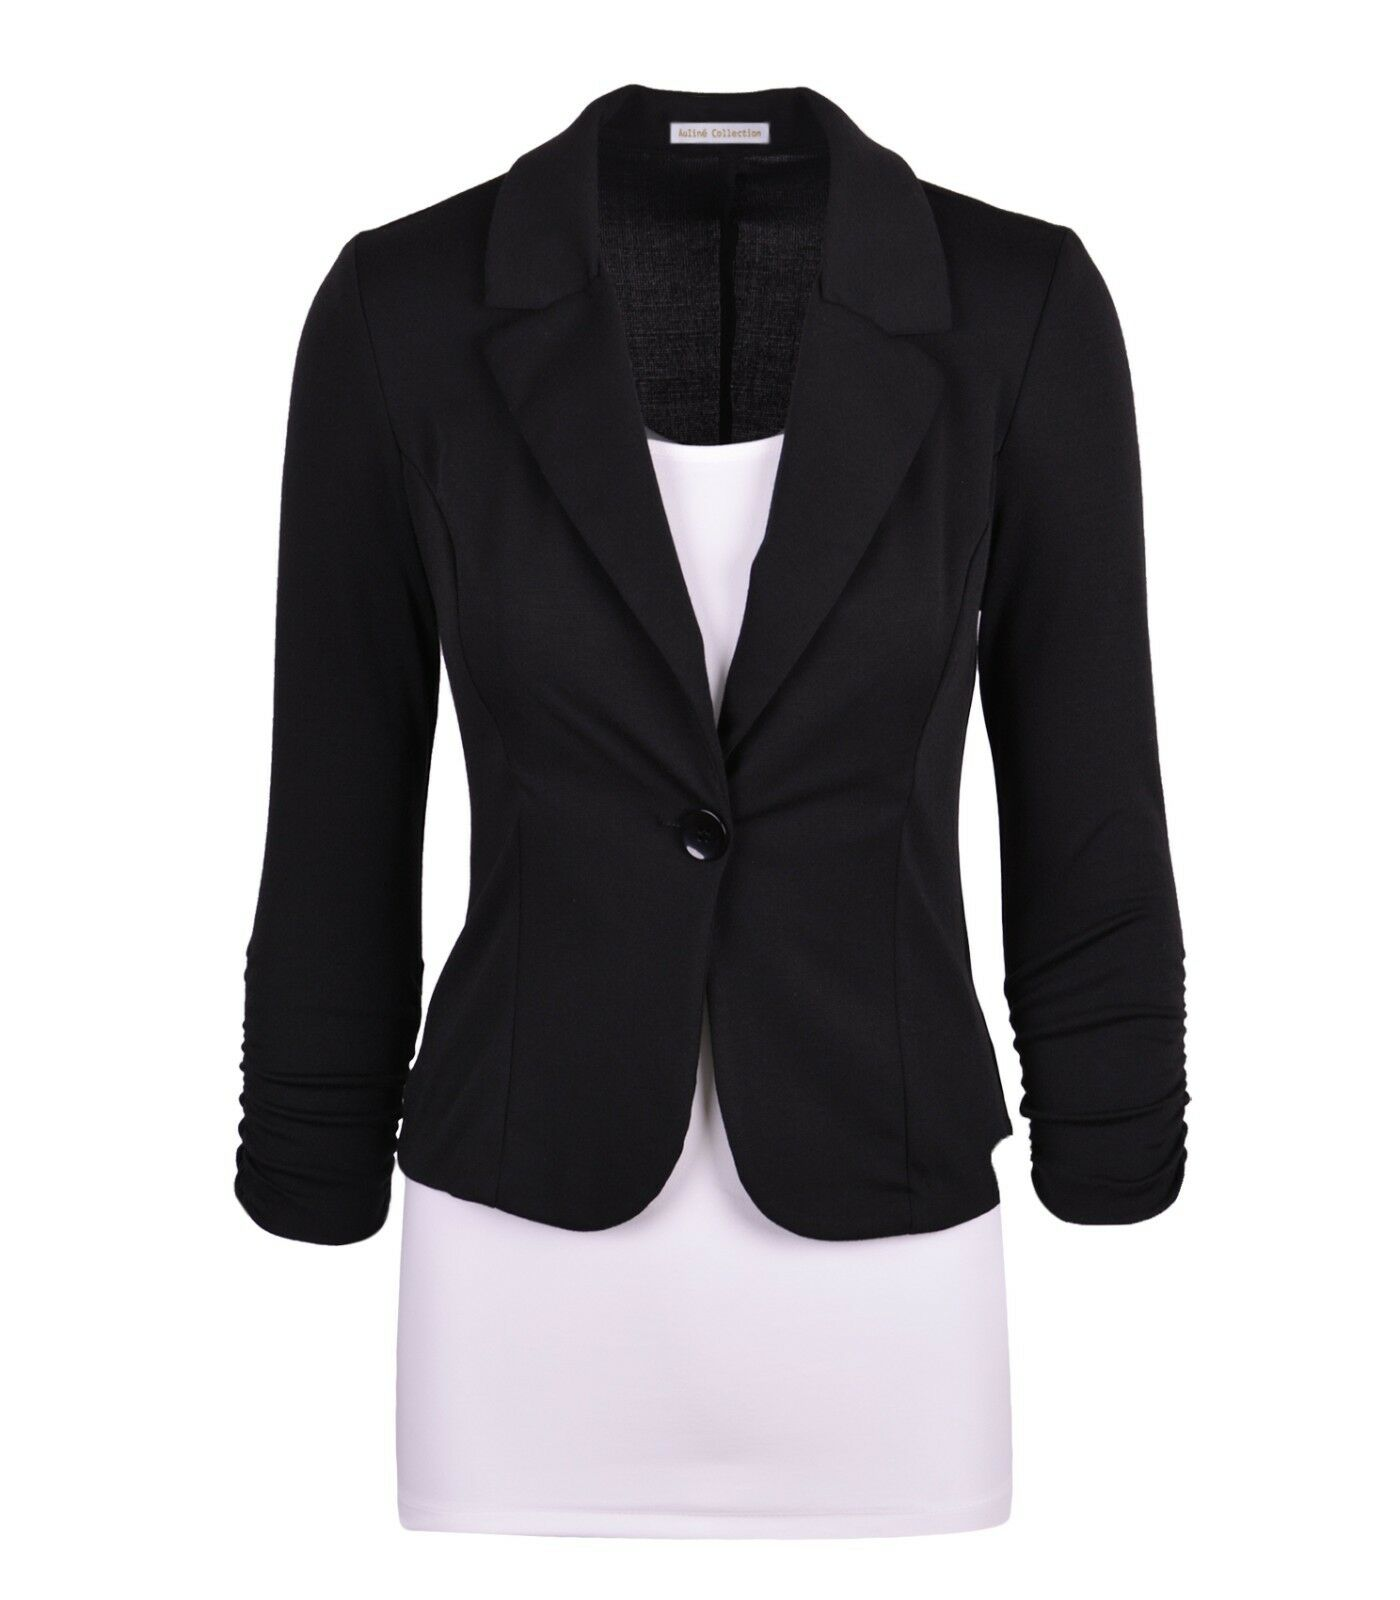 0c5cf319 Aulin Collection Women's Casual Work Solid Color Knit Blazer Black 5x